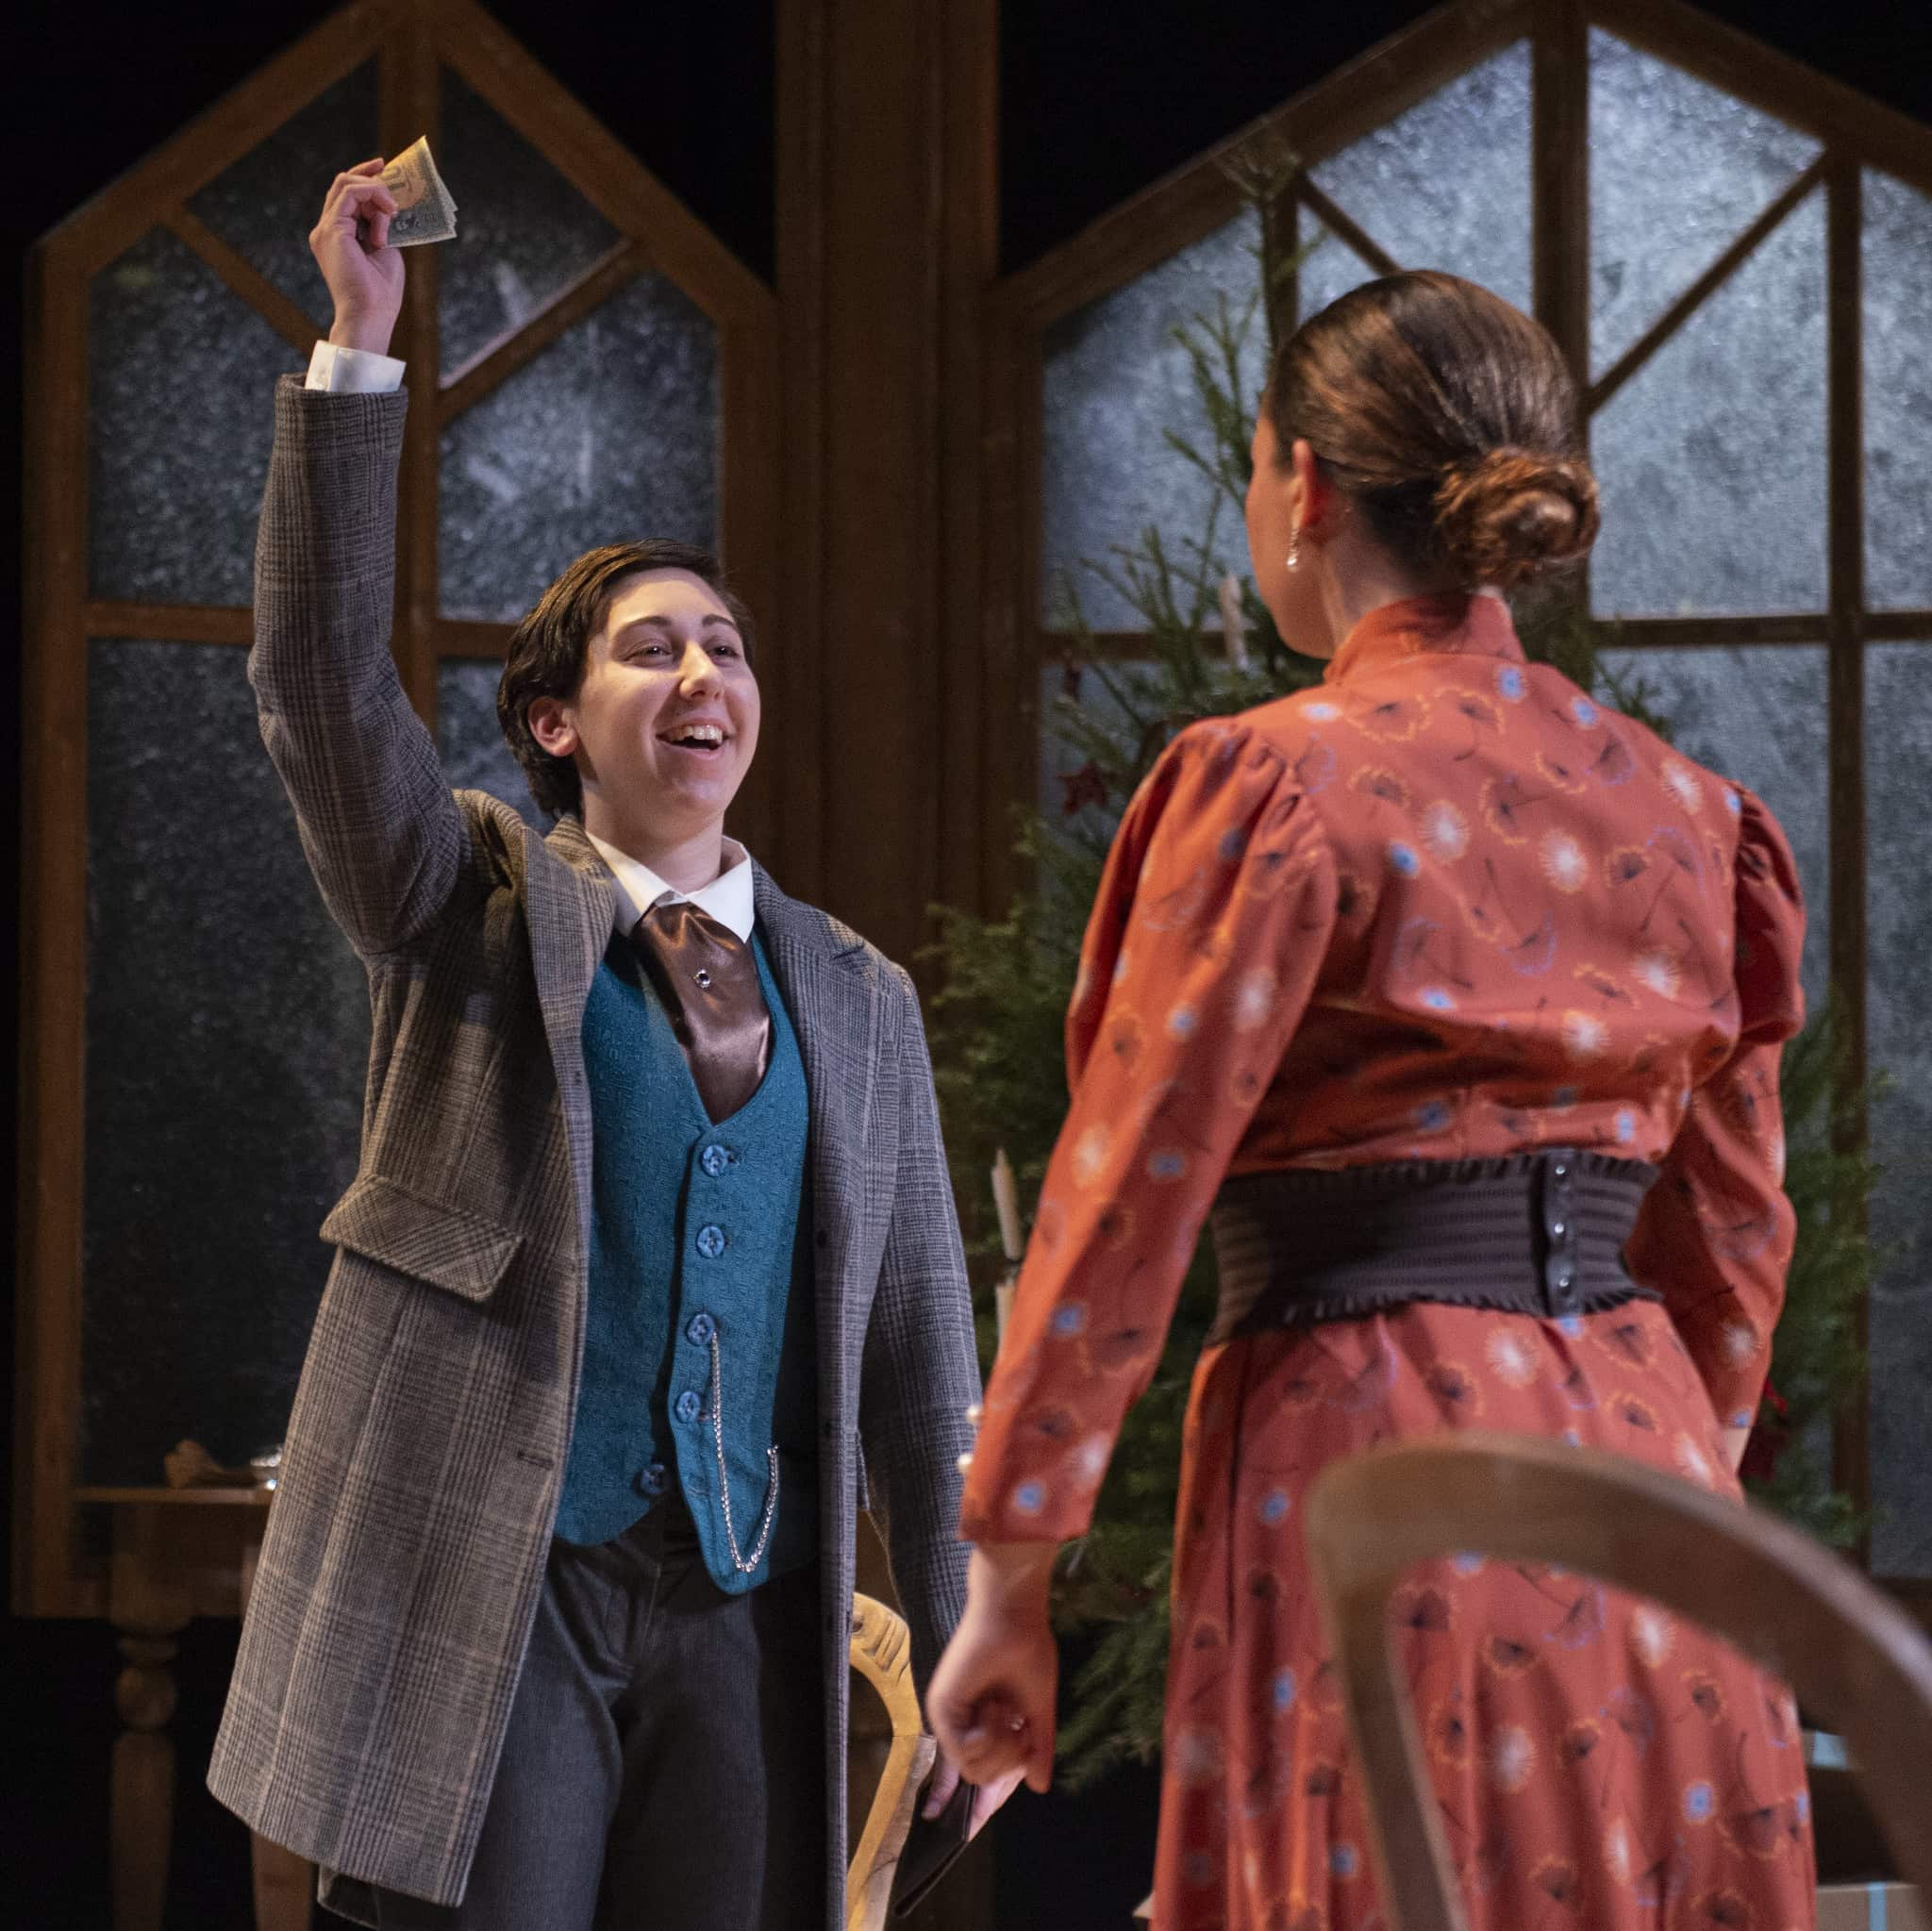 Beth Rendely as Torvald and Des'ree Brown as Nora in 'A Doll House' at the University of Maryland School of Theatre, Dance, and Performance Studies at the Clarice Smith Performing Arts Center. Photo by David Andrews.